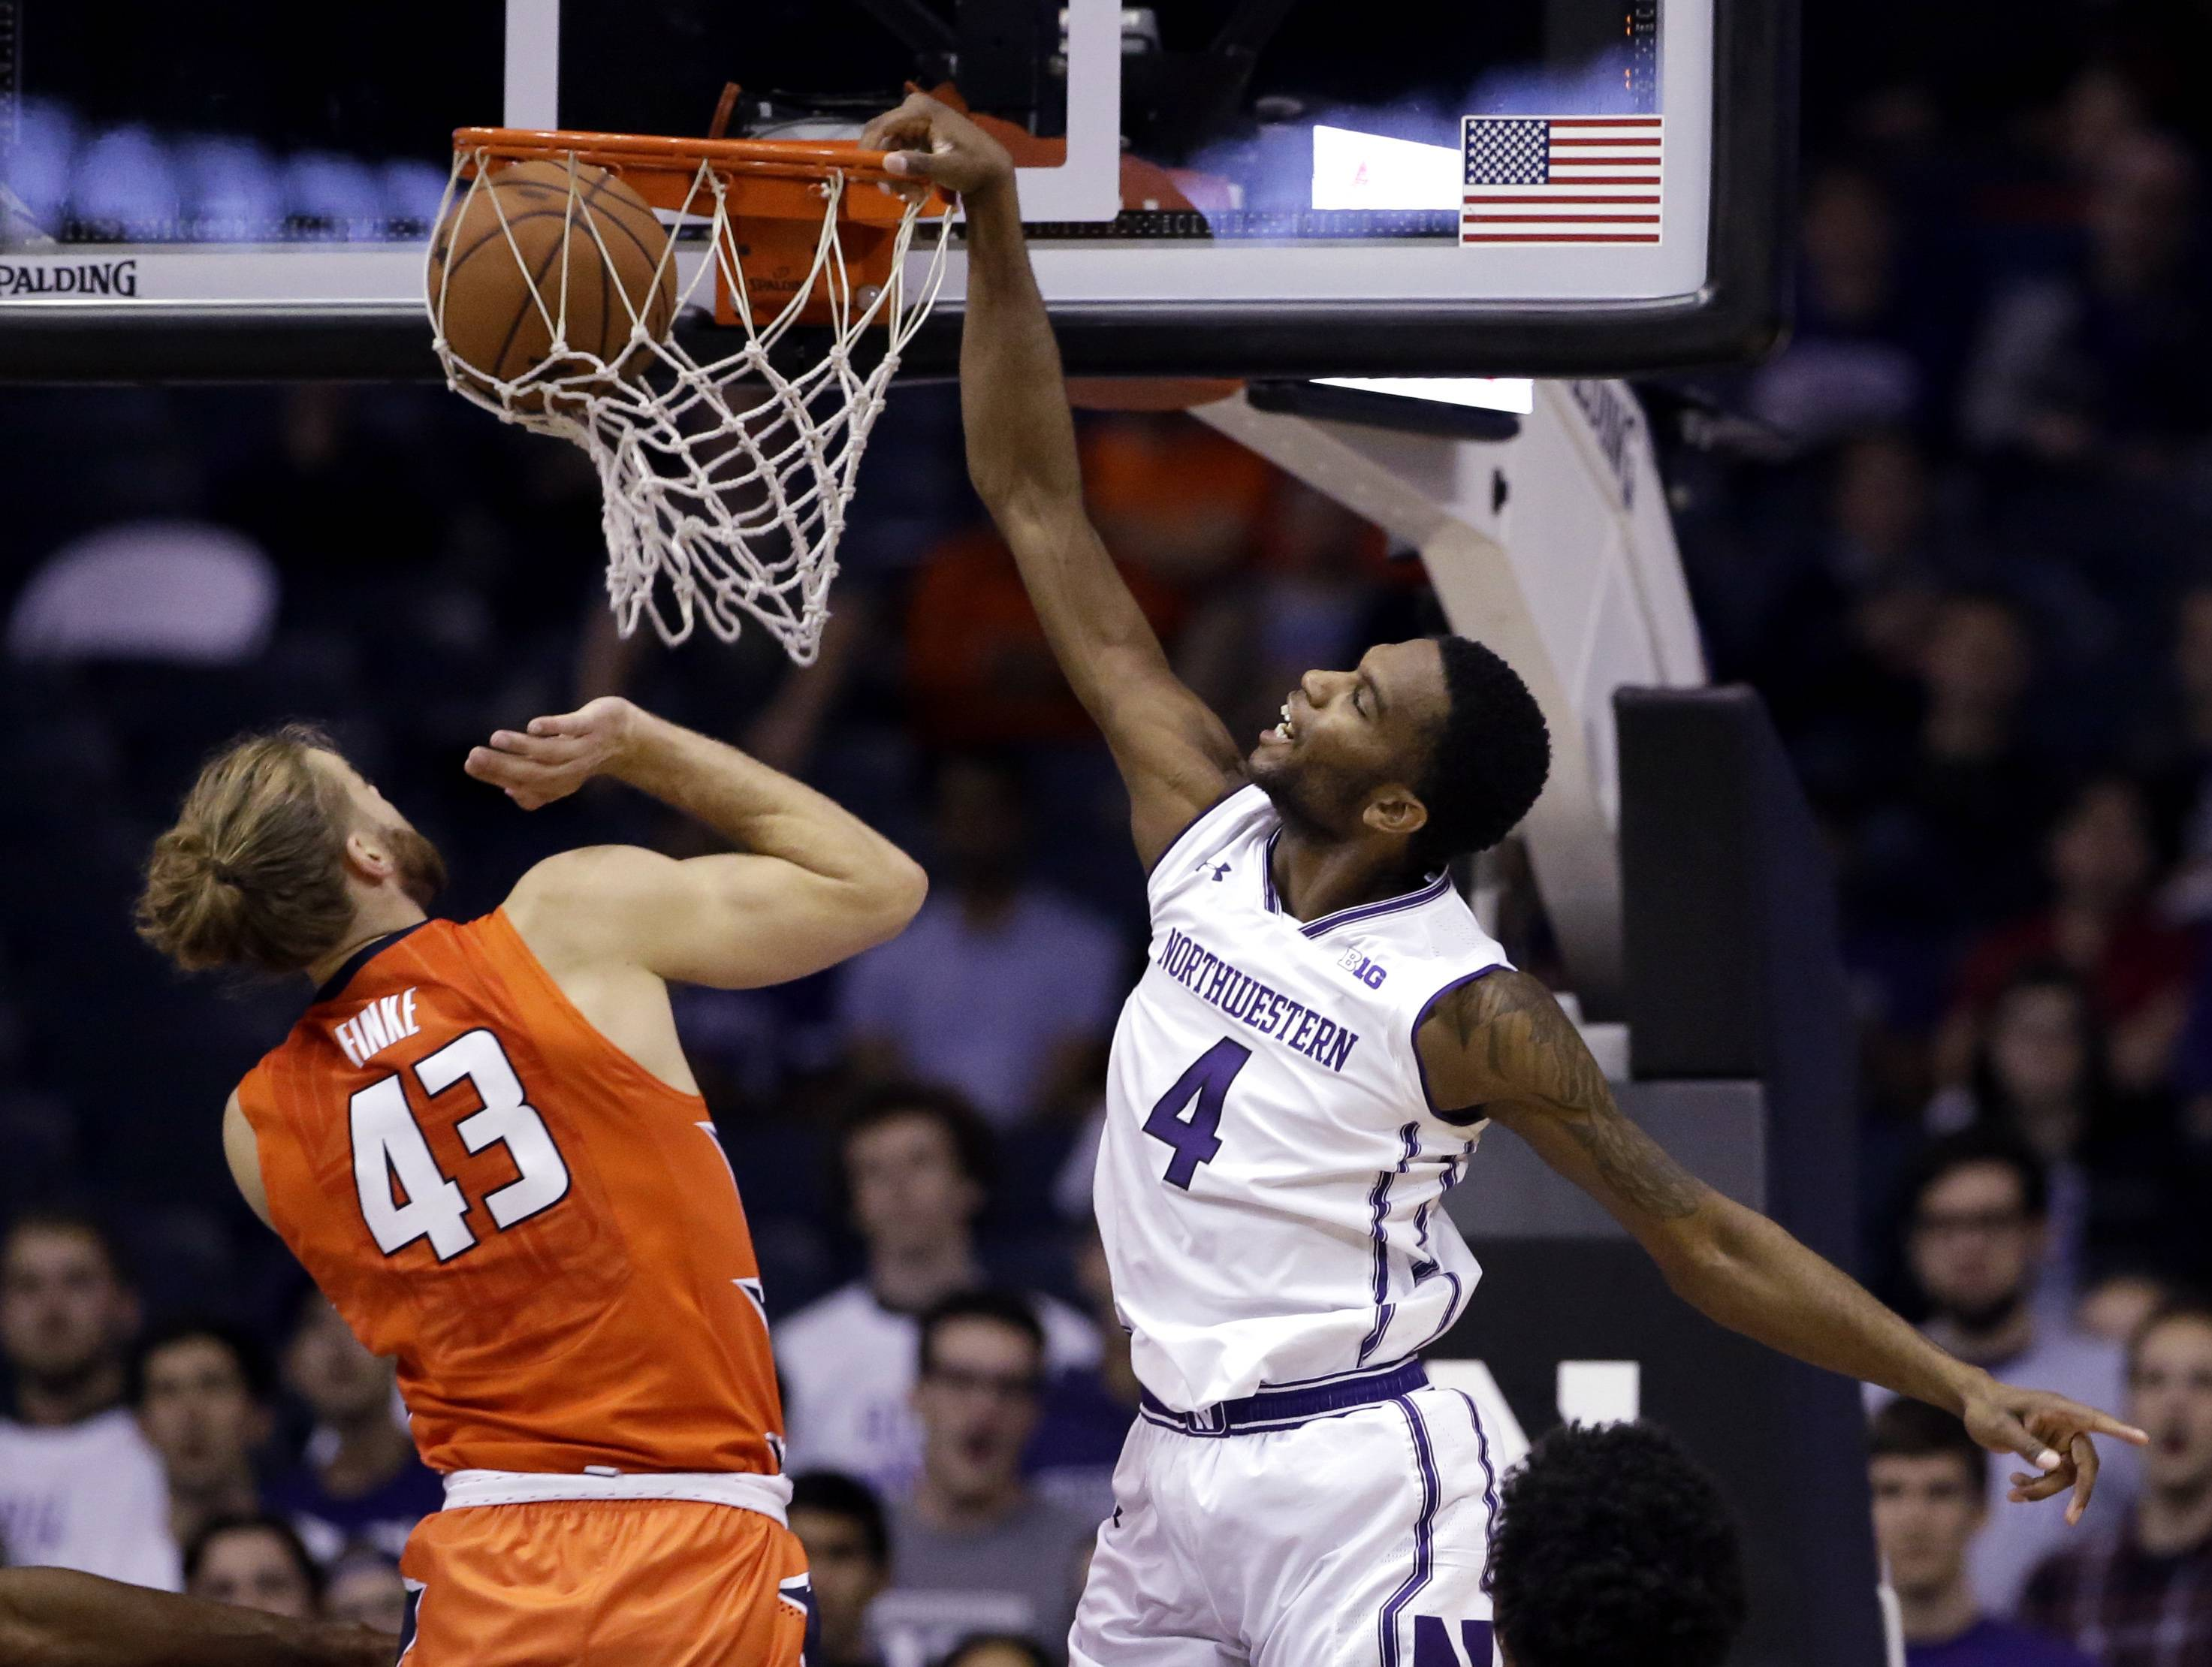 Northwestern forward Vic Law, right, dunks against Illinois forward Michael Finke during the first half of an NCAA college basketball game Friday, Dec. 1, 2017, in Rosemont, Ill. (AP Photo/Nam Y. Huh)